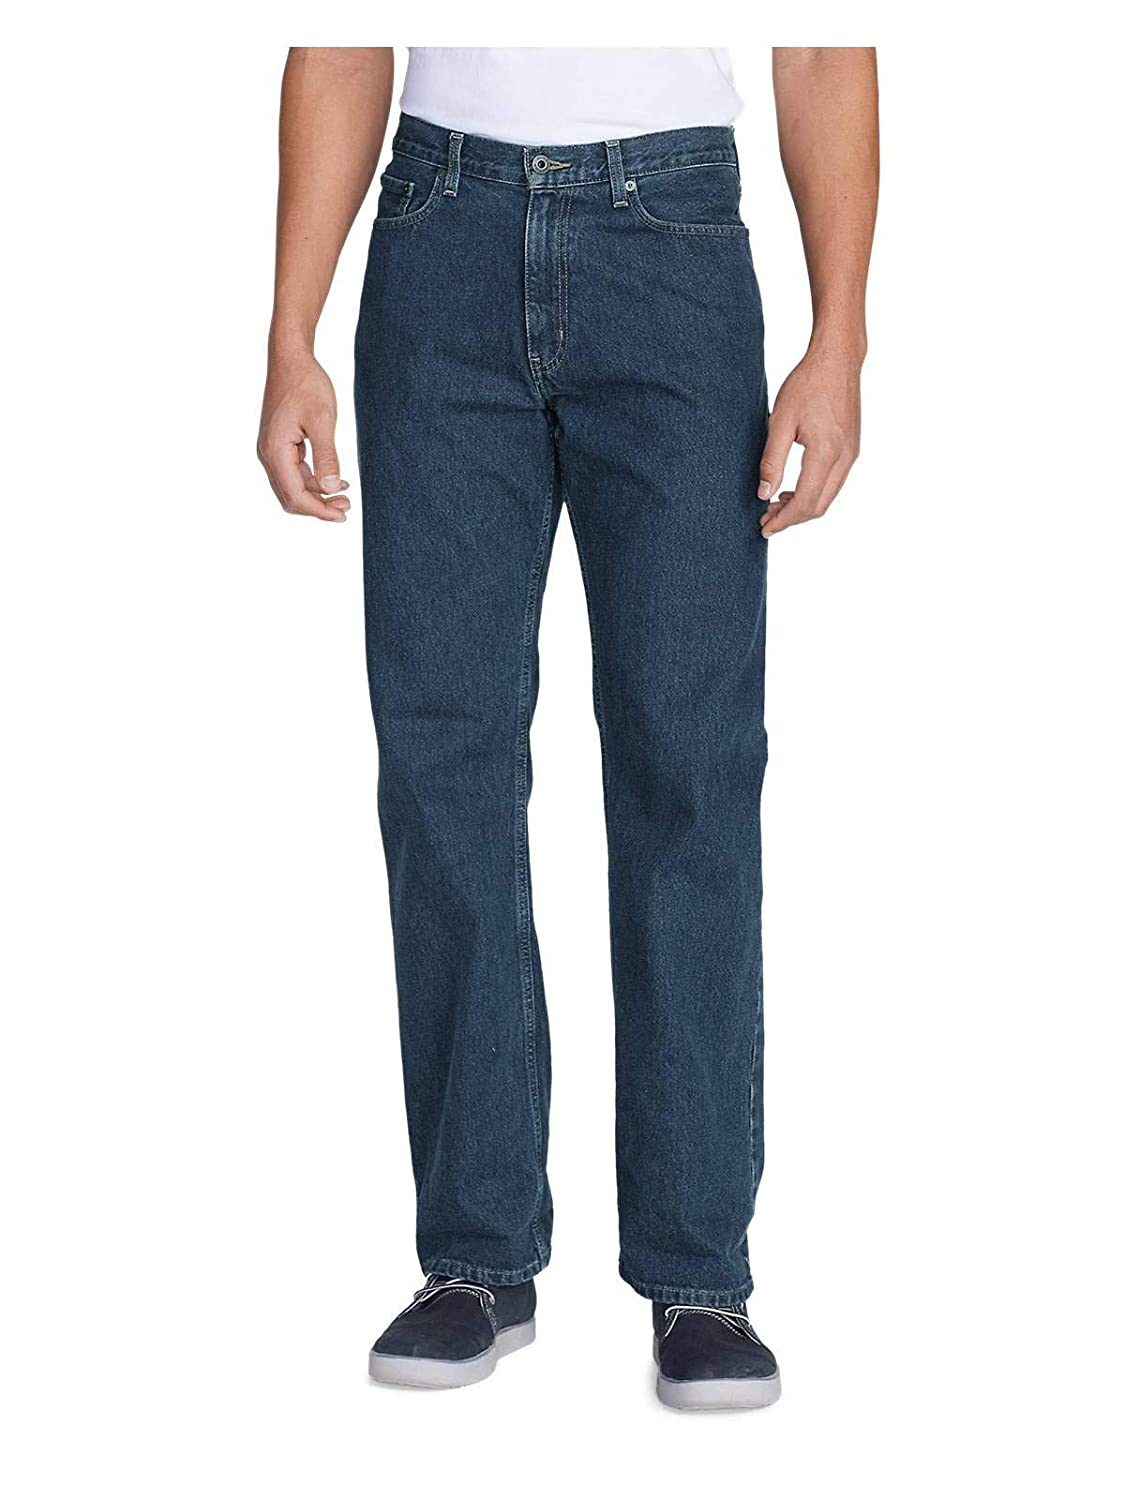 ca4310461d Eddie Bauer Men's Relaxed Fit Essential Jeans